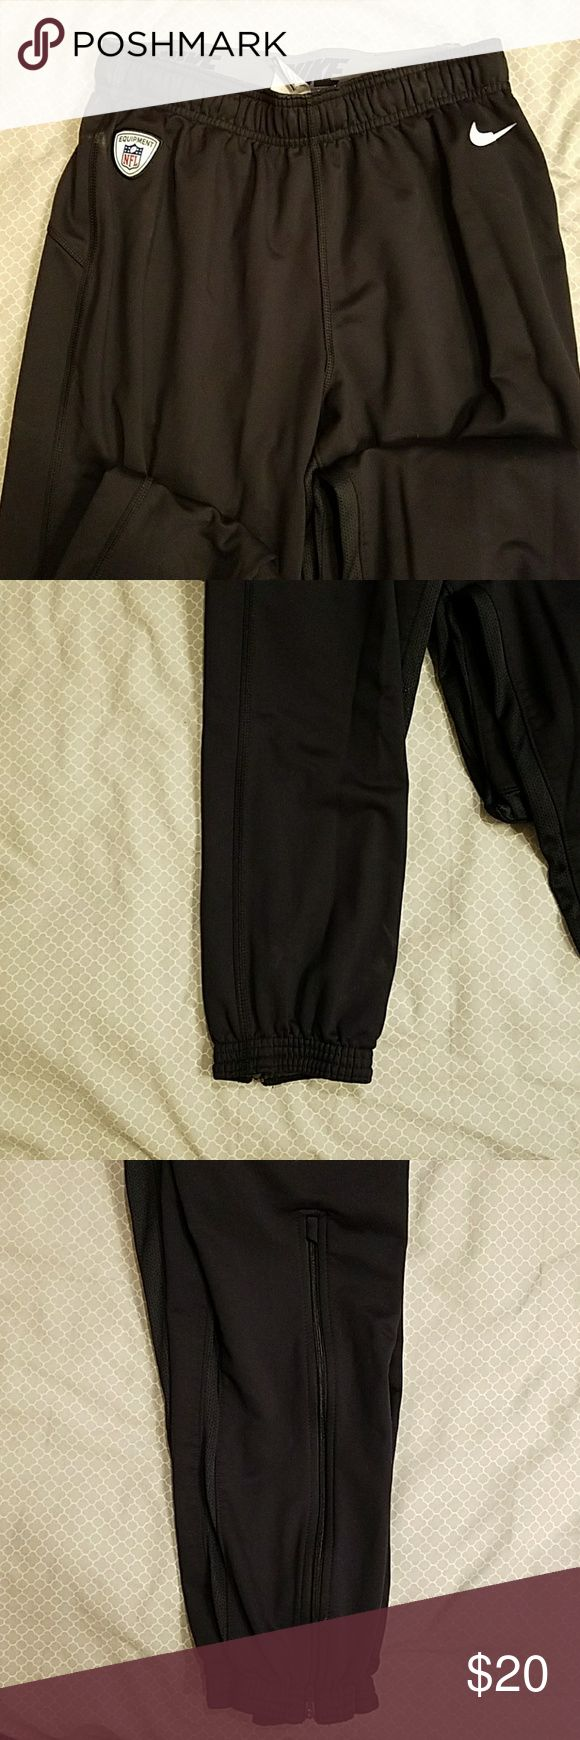 Nike NFL training joggers Nike NFL training joggers. High quality and great design. Has a rubberized material inside the leg cuff to keep them down around the ankle. Nike Pants Sweatpants & Joggers